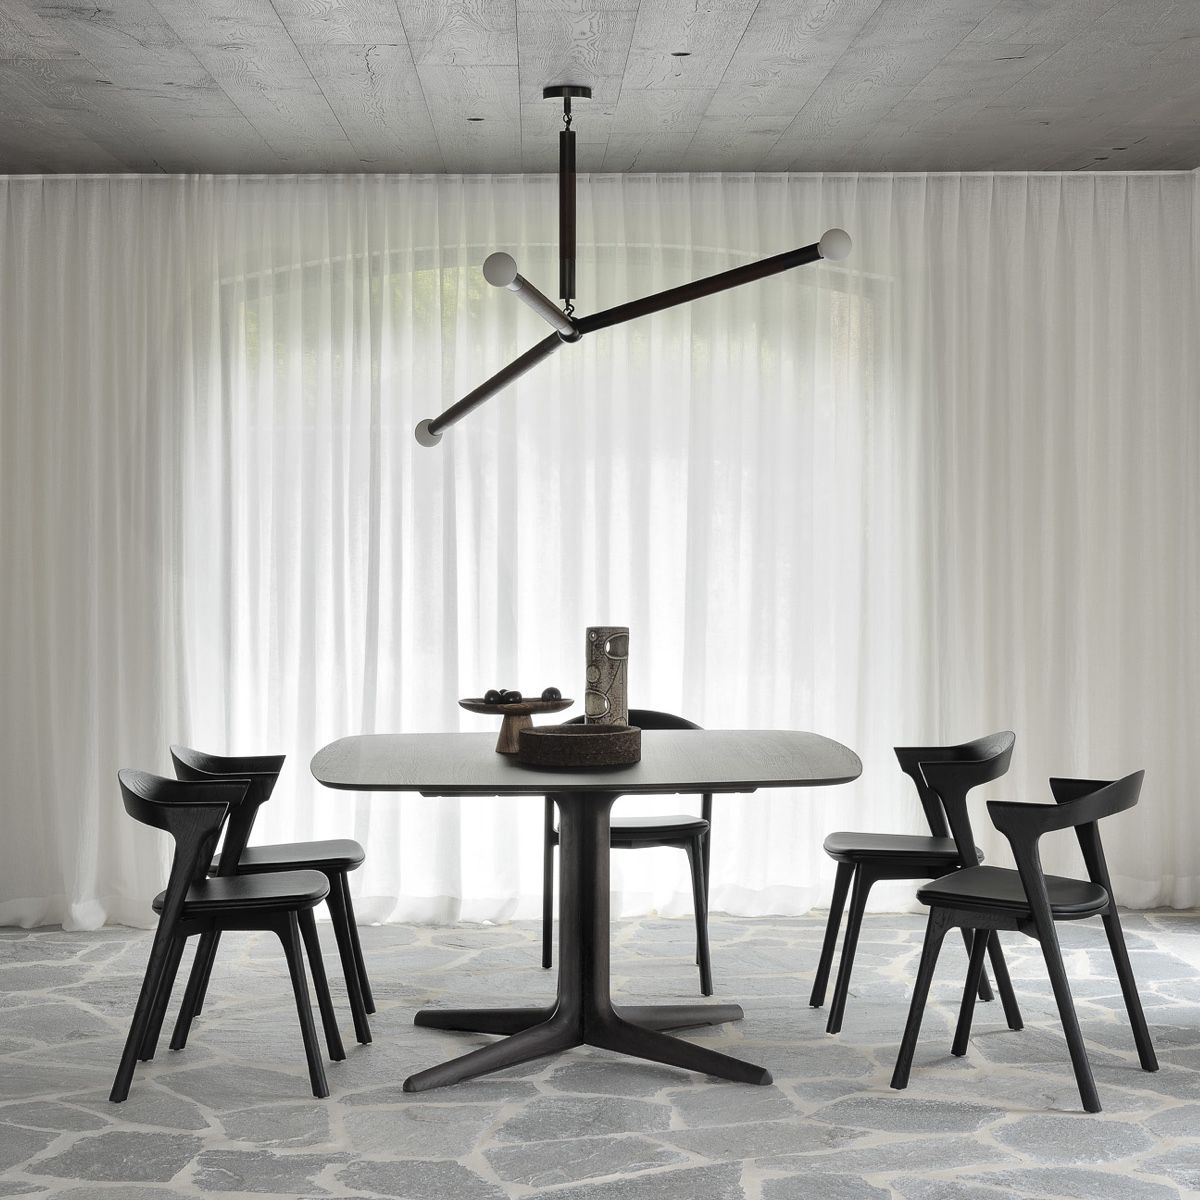 Ethnicraft Corto Brown Dining Table